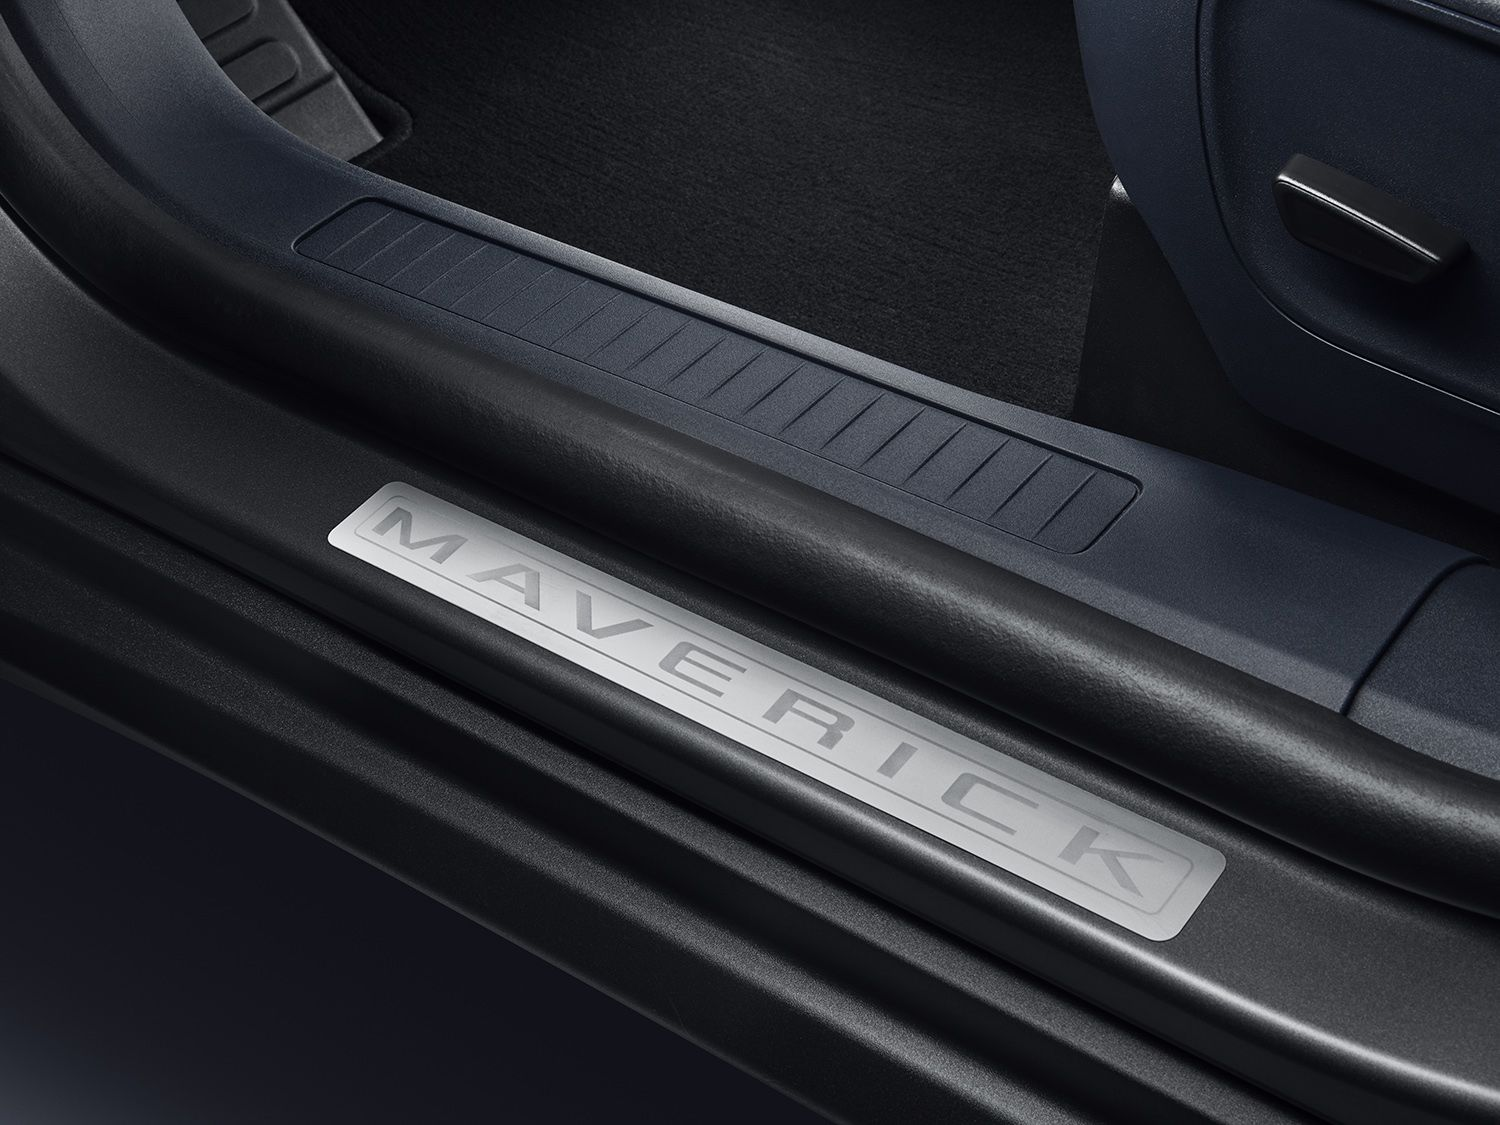 2022 ford maverick Door Sill Plates - 4 Piece Set, Polished Stainless Steel by Putco front.jpg